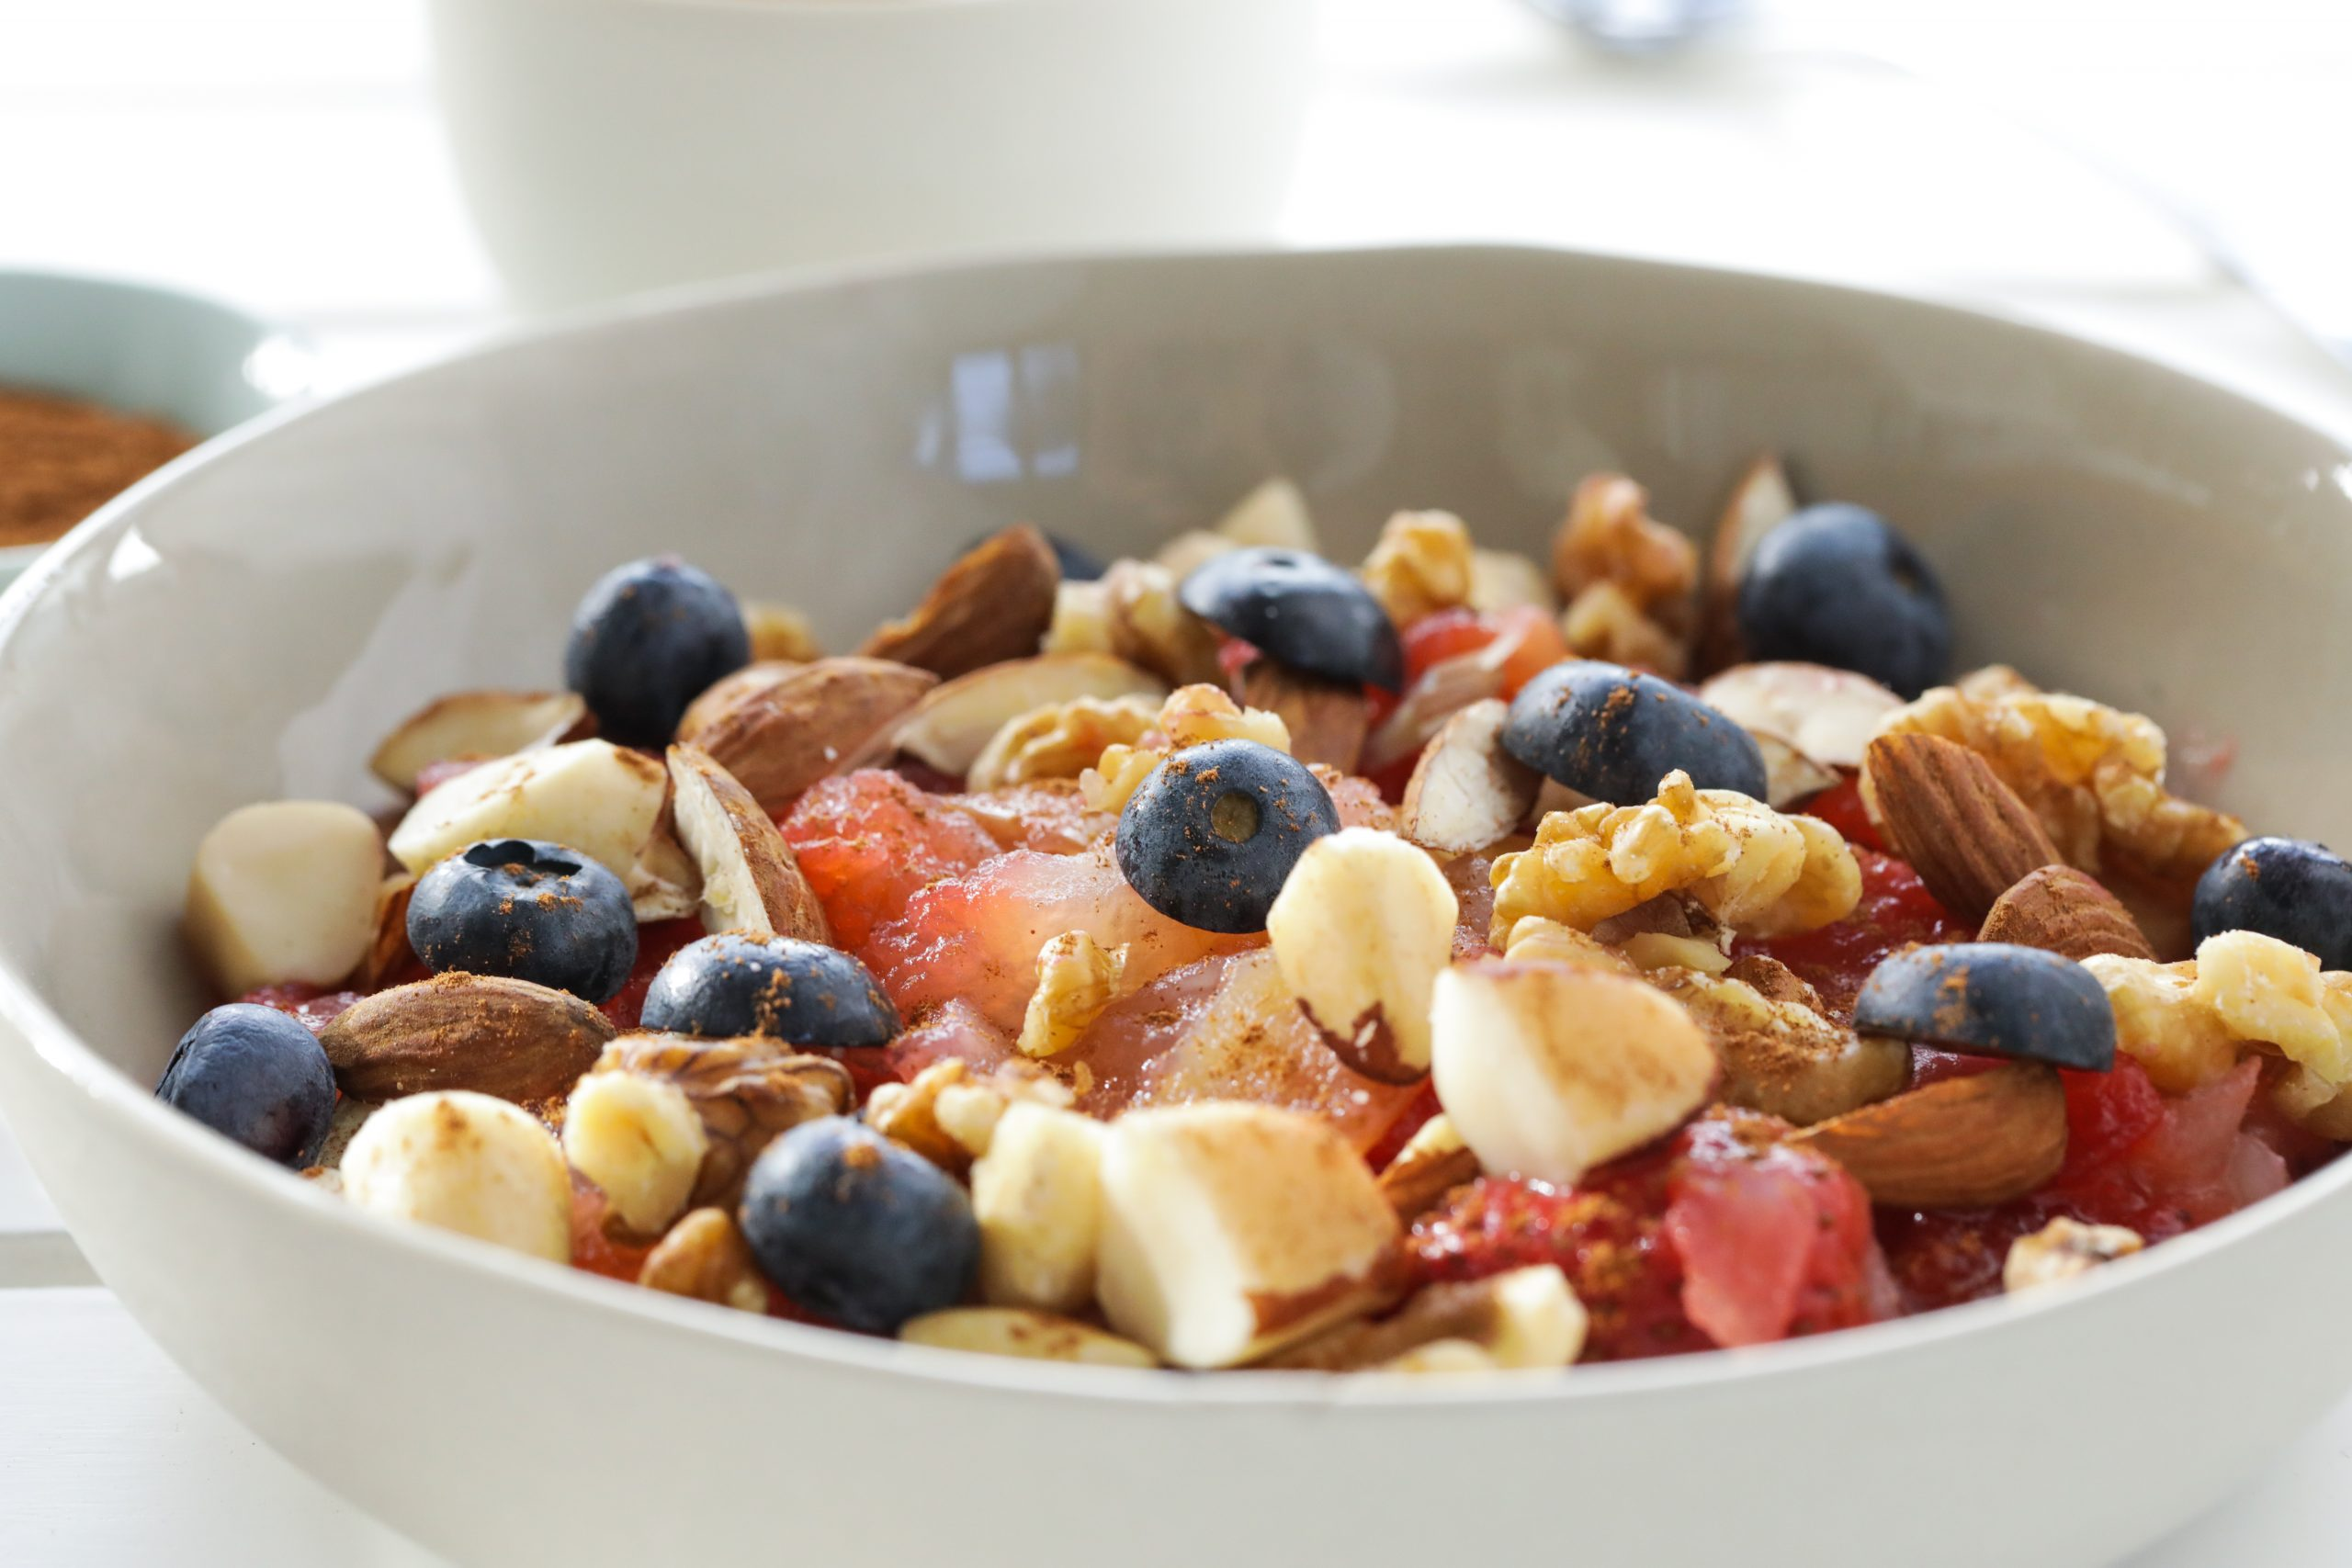 Warm Cinnamon Apple with Berries and Nuts